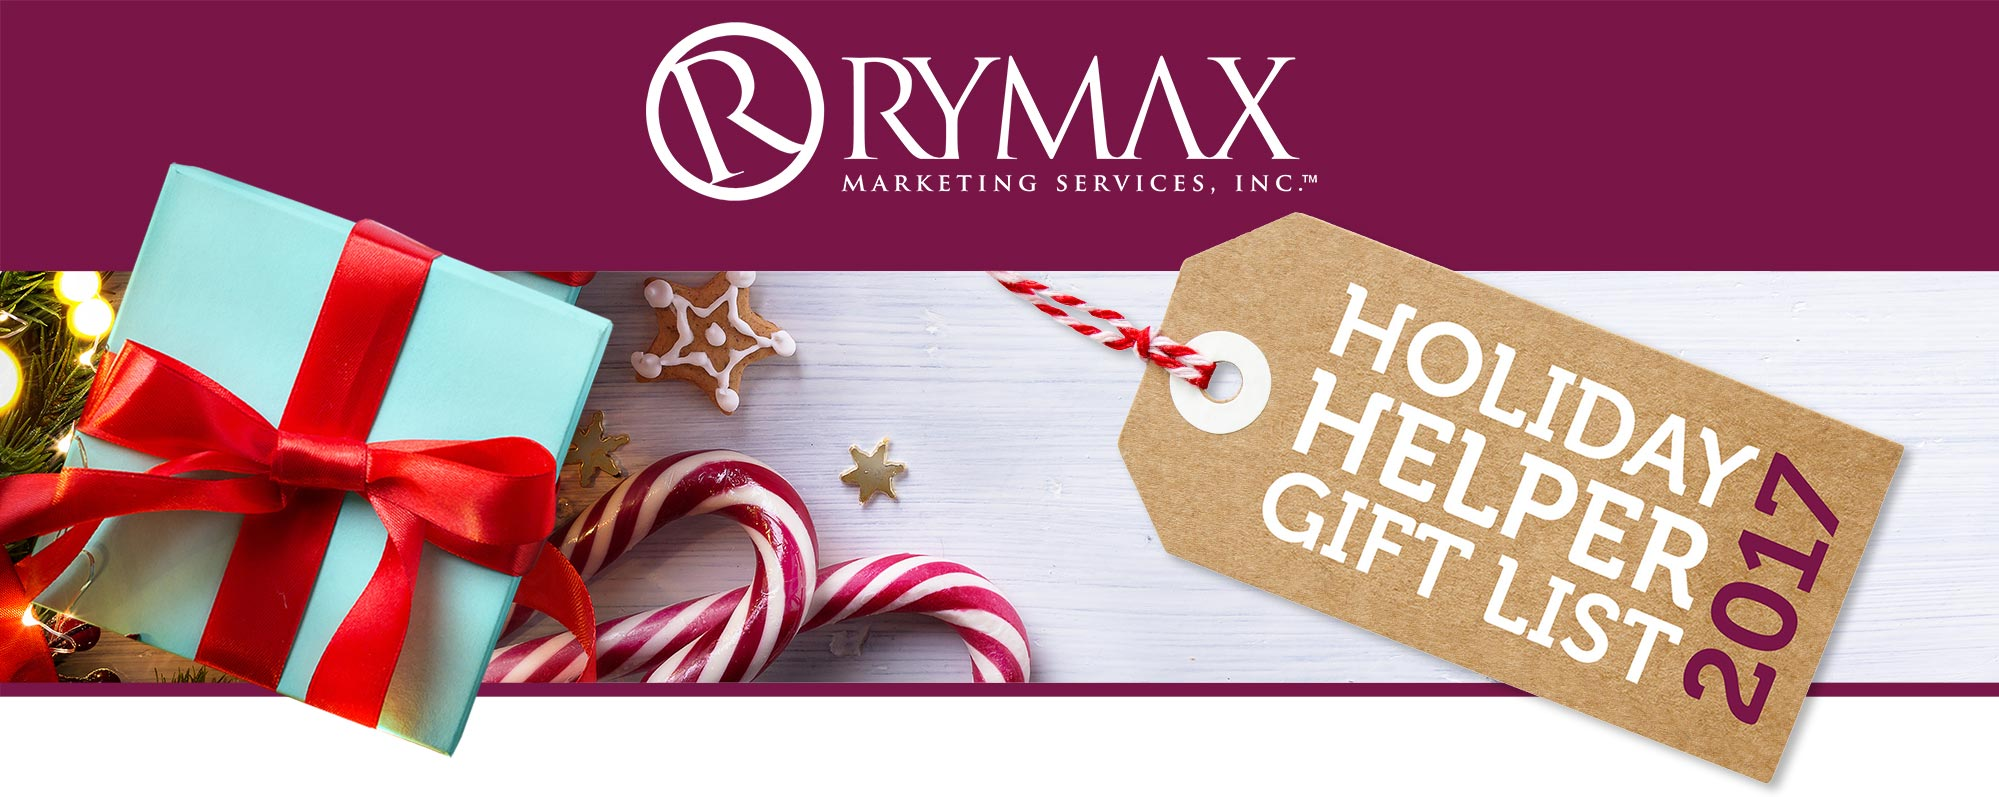 Rymax Holiday Helper Gift List 2017